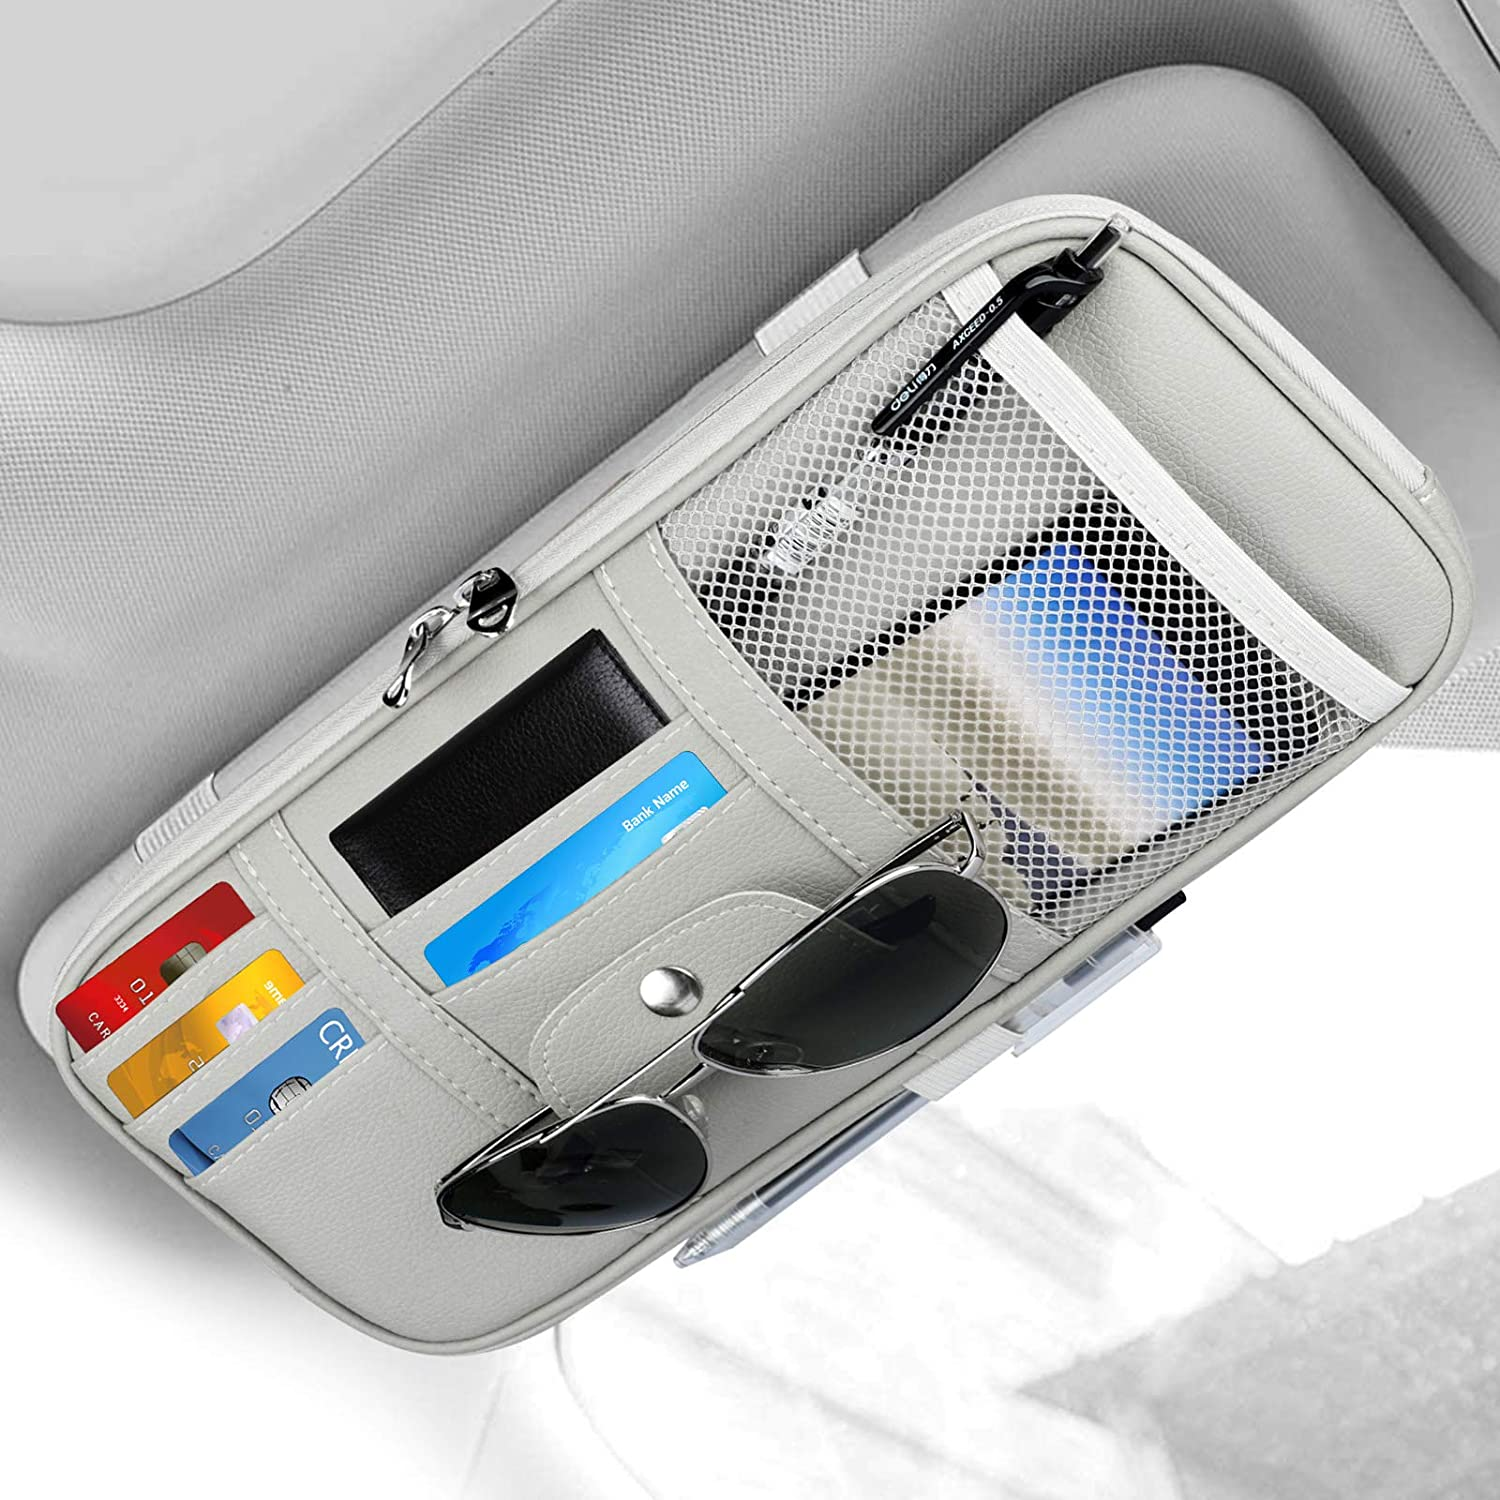 Beige Auto Car Interior Leather Accessories Storage Pocket Sun Visor Pouch Case Bag for Card License Registration Pen Mobile Phone Bill Note Key Document Car Sun Visor Organizer